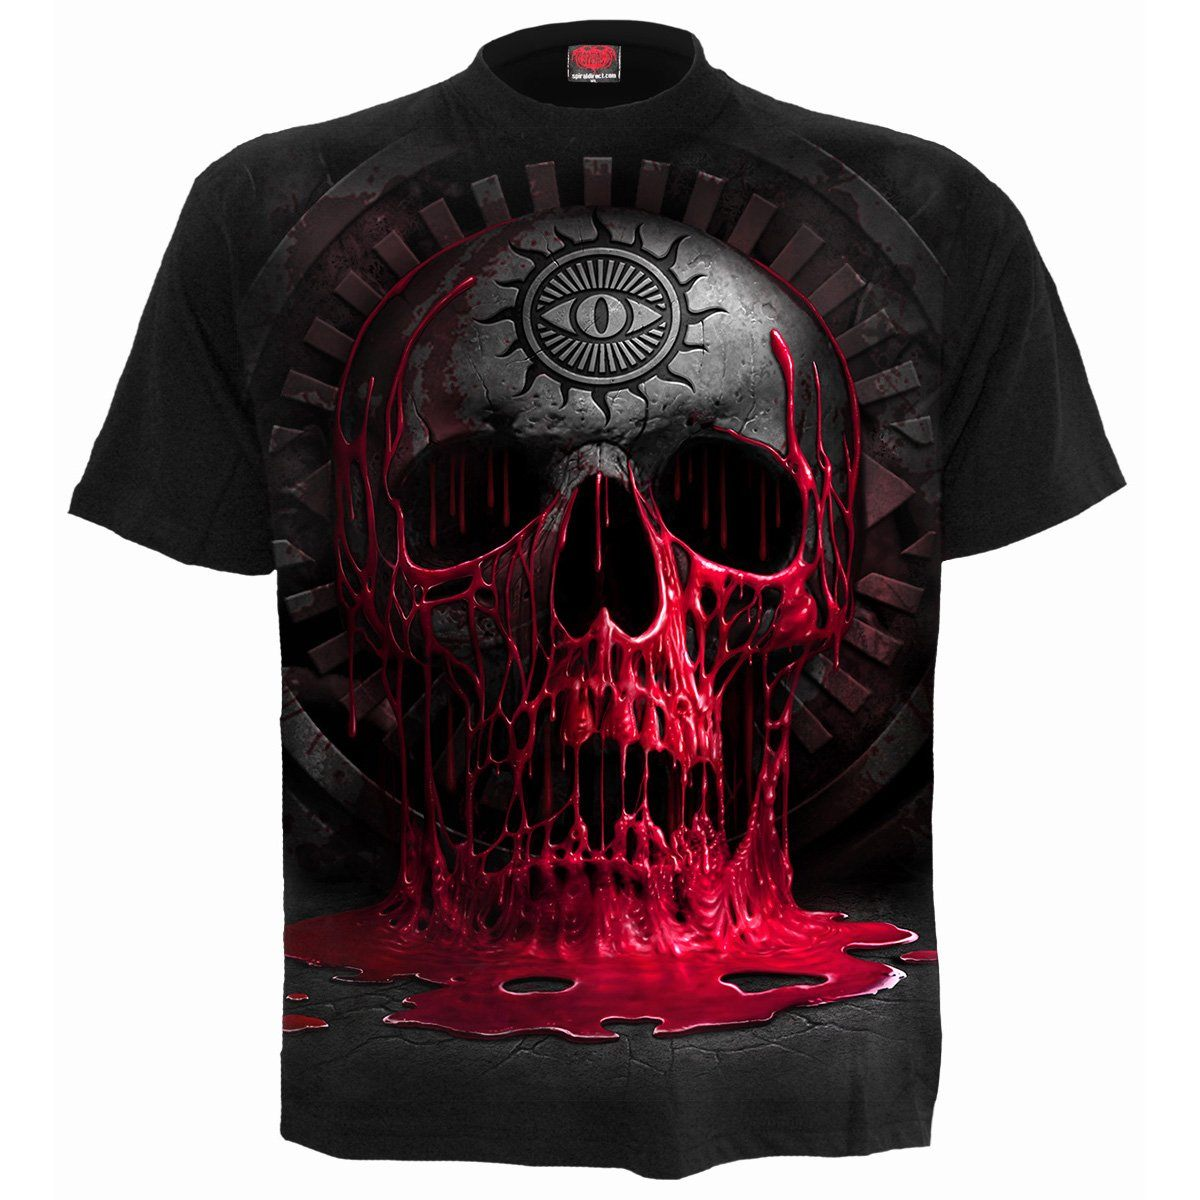 Cursed Skulls Men's Black T-Shirt